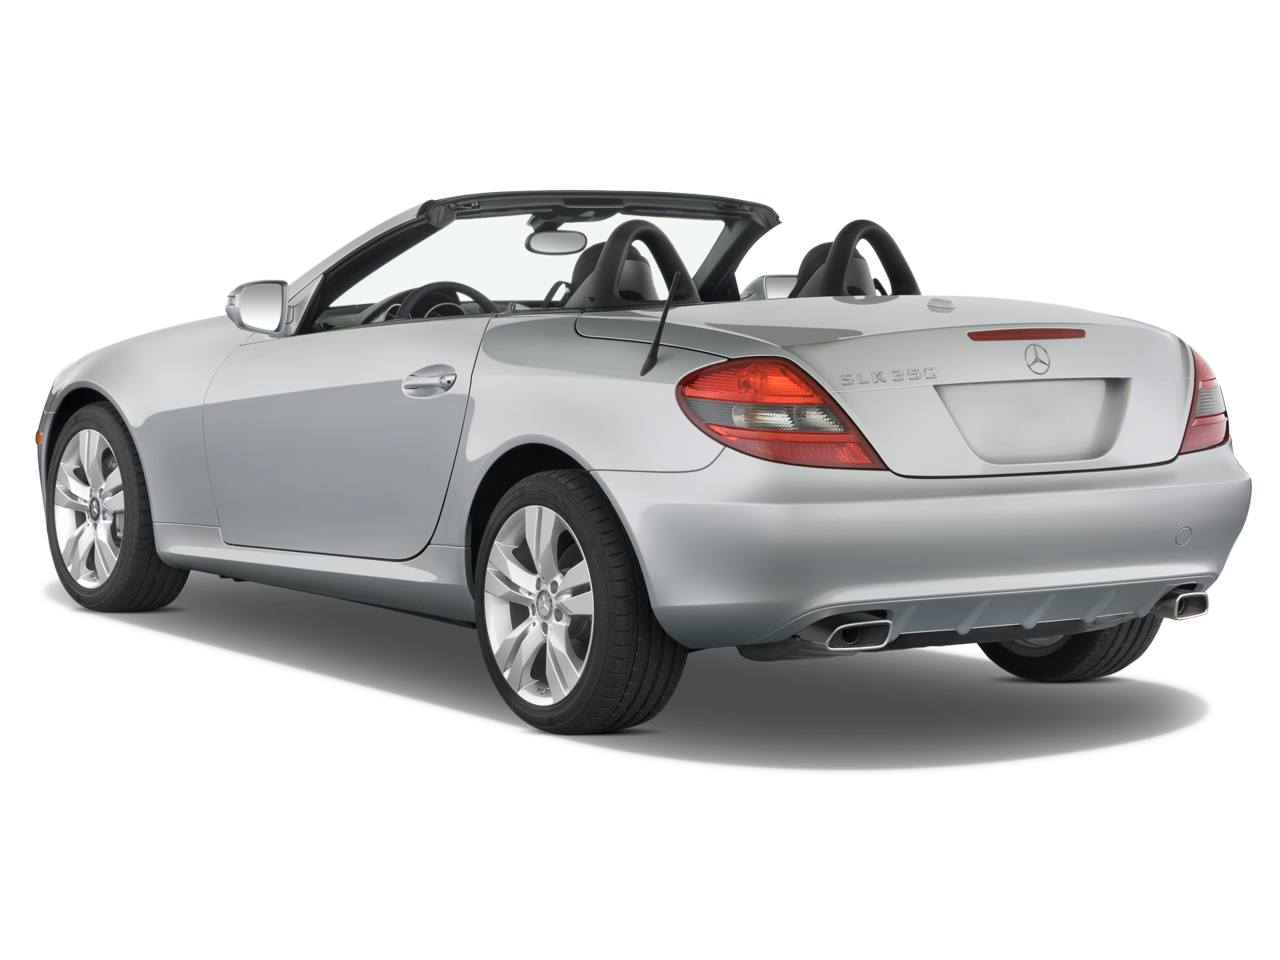 2009 mercedes benz slk350 mercedes benz luxury convertible review automobile magazine. Black Bedroom Furniture Sets. Home Design Ideas